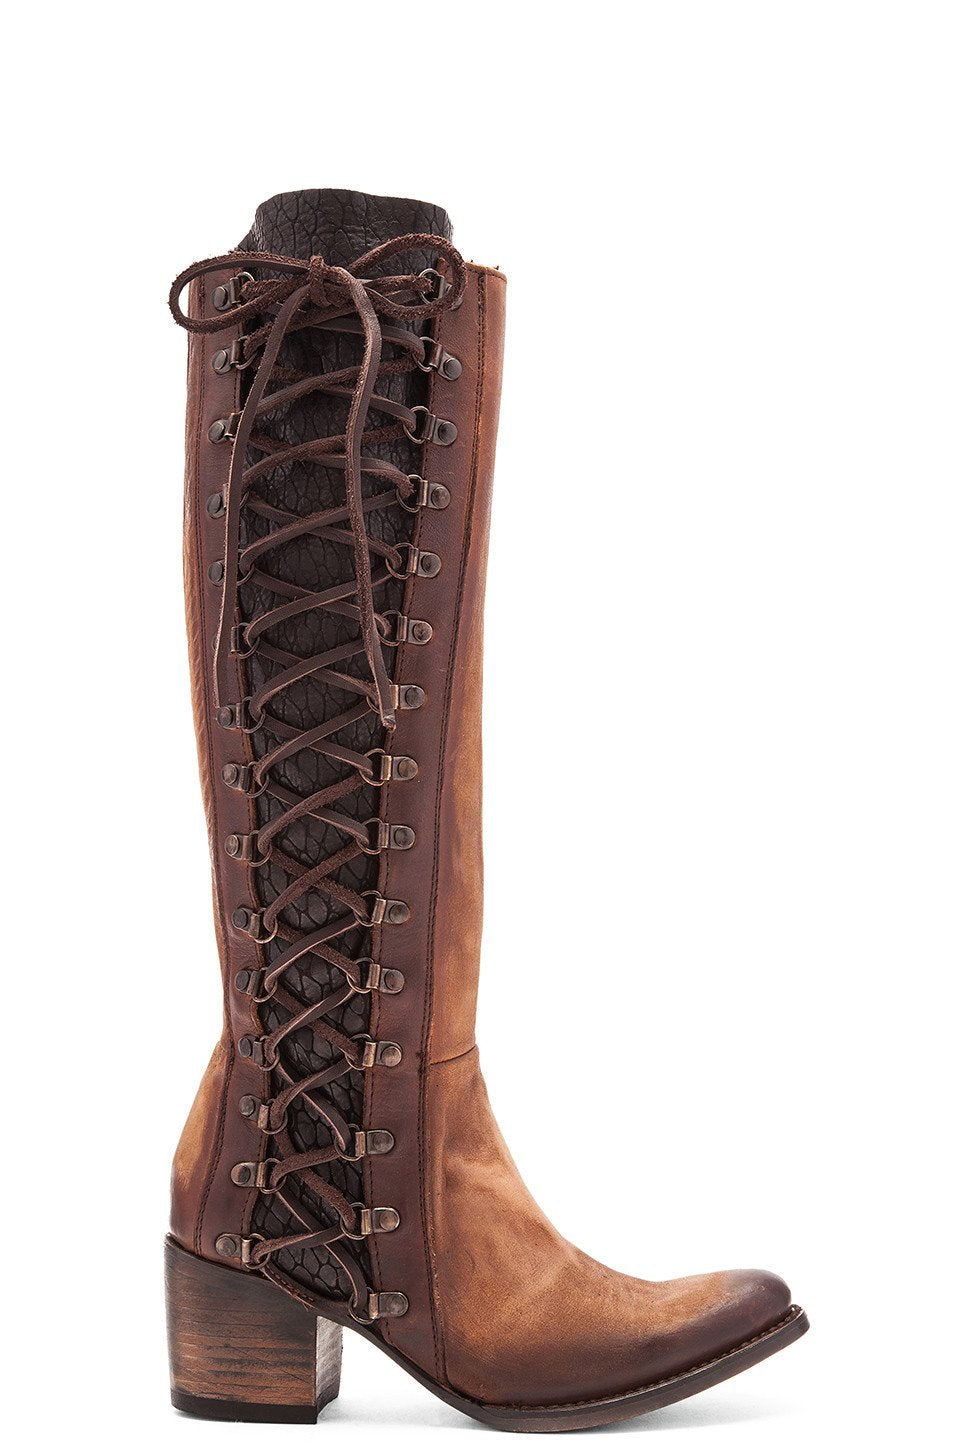 Wyatt Boot - Kustom Label - 1